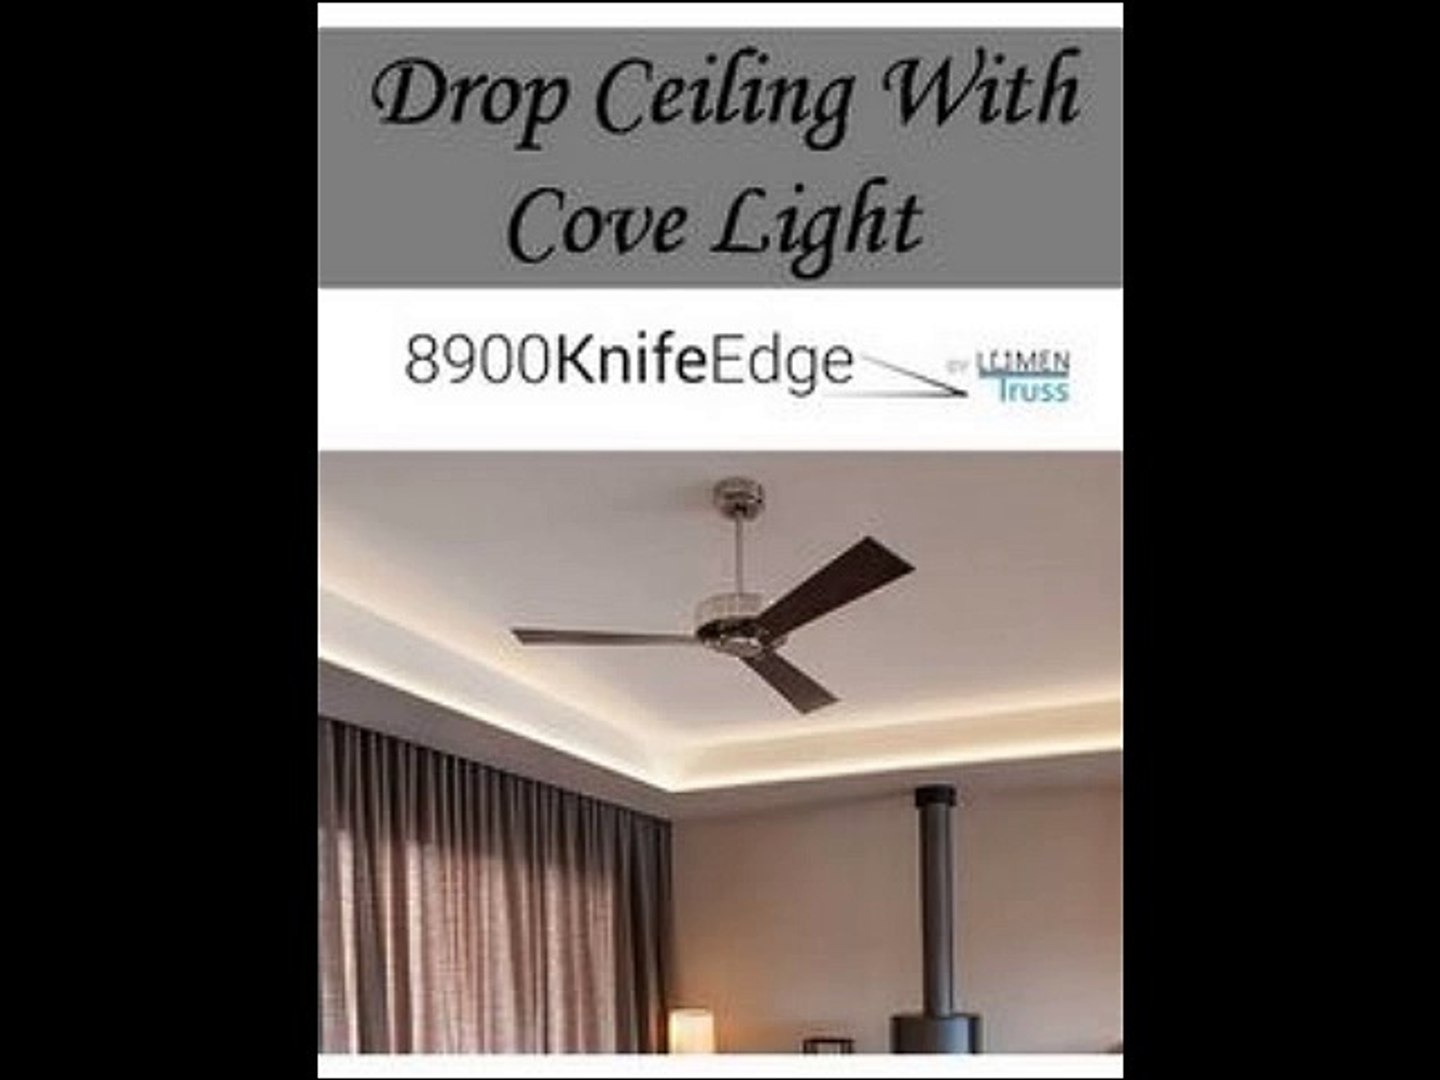 Drop Ceiling With Cove Light Video Dailymotion